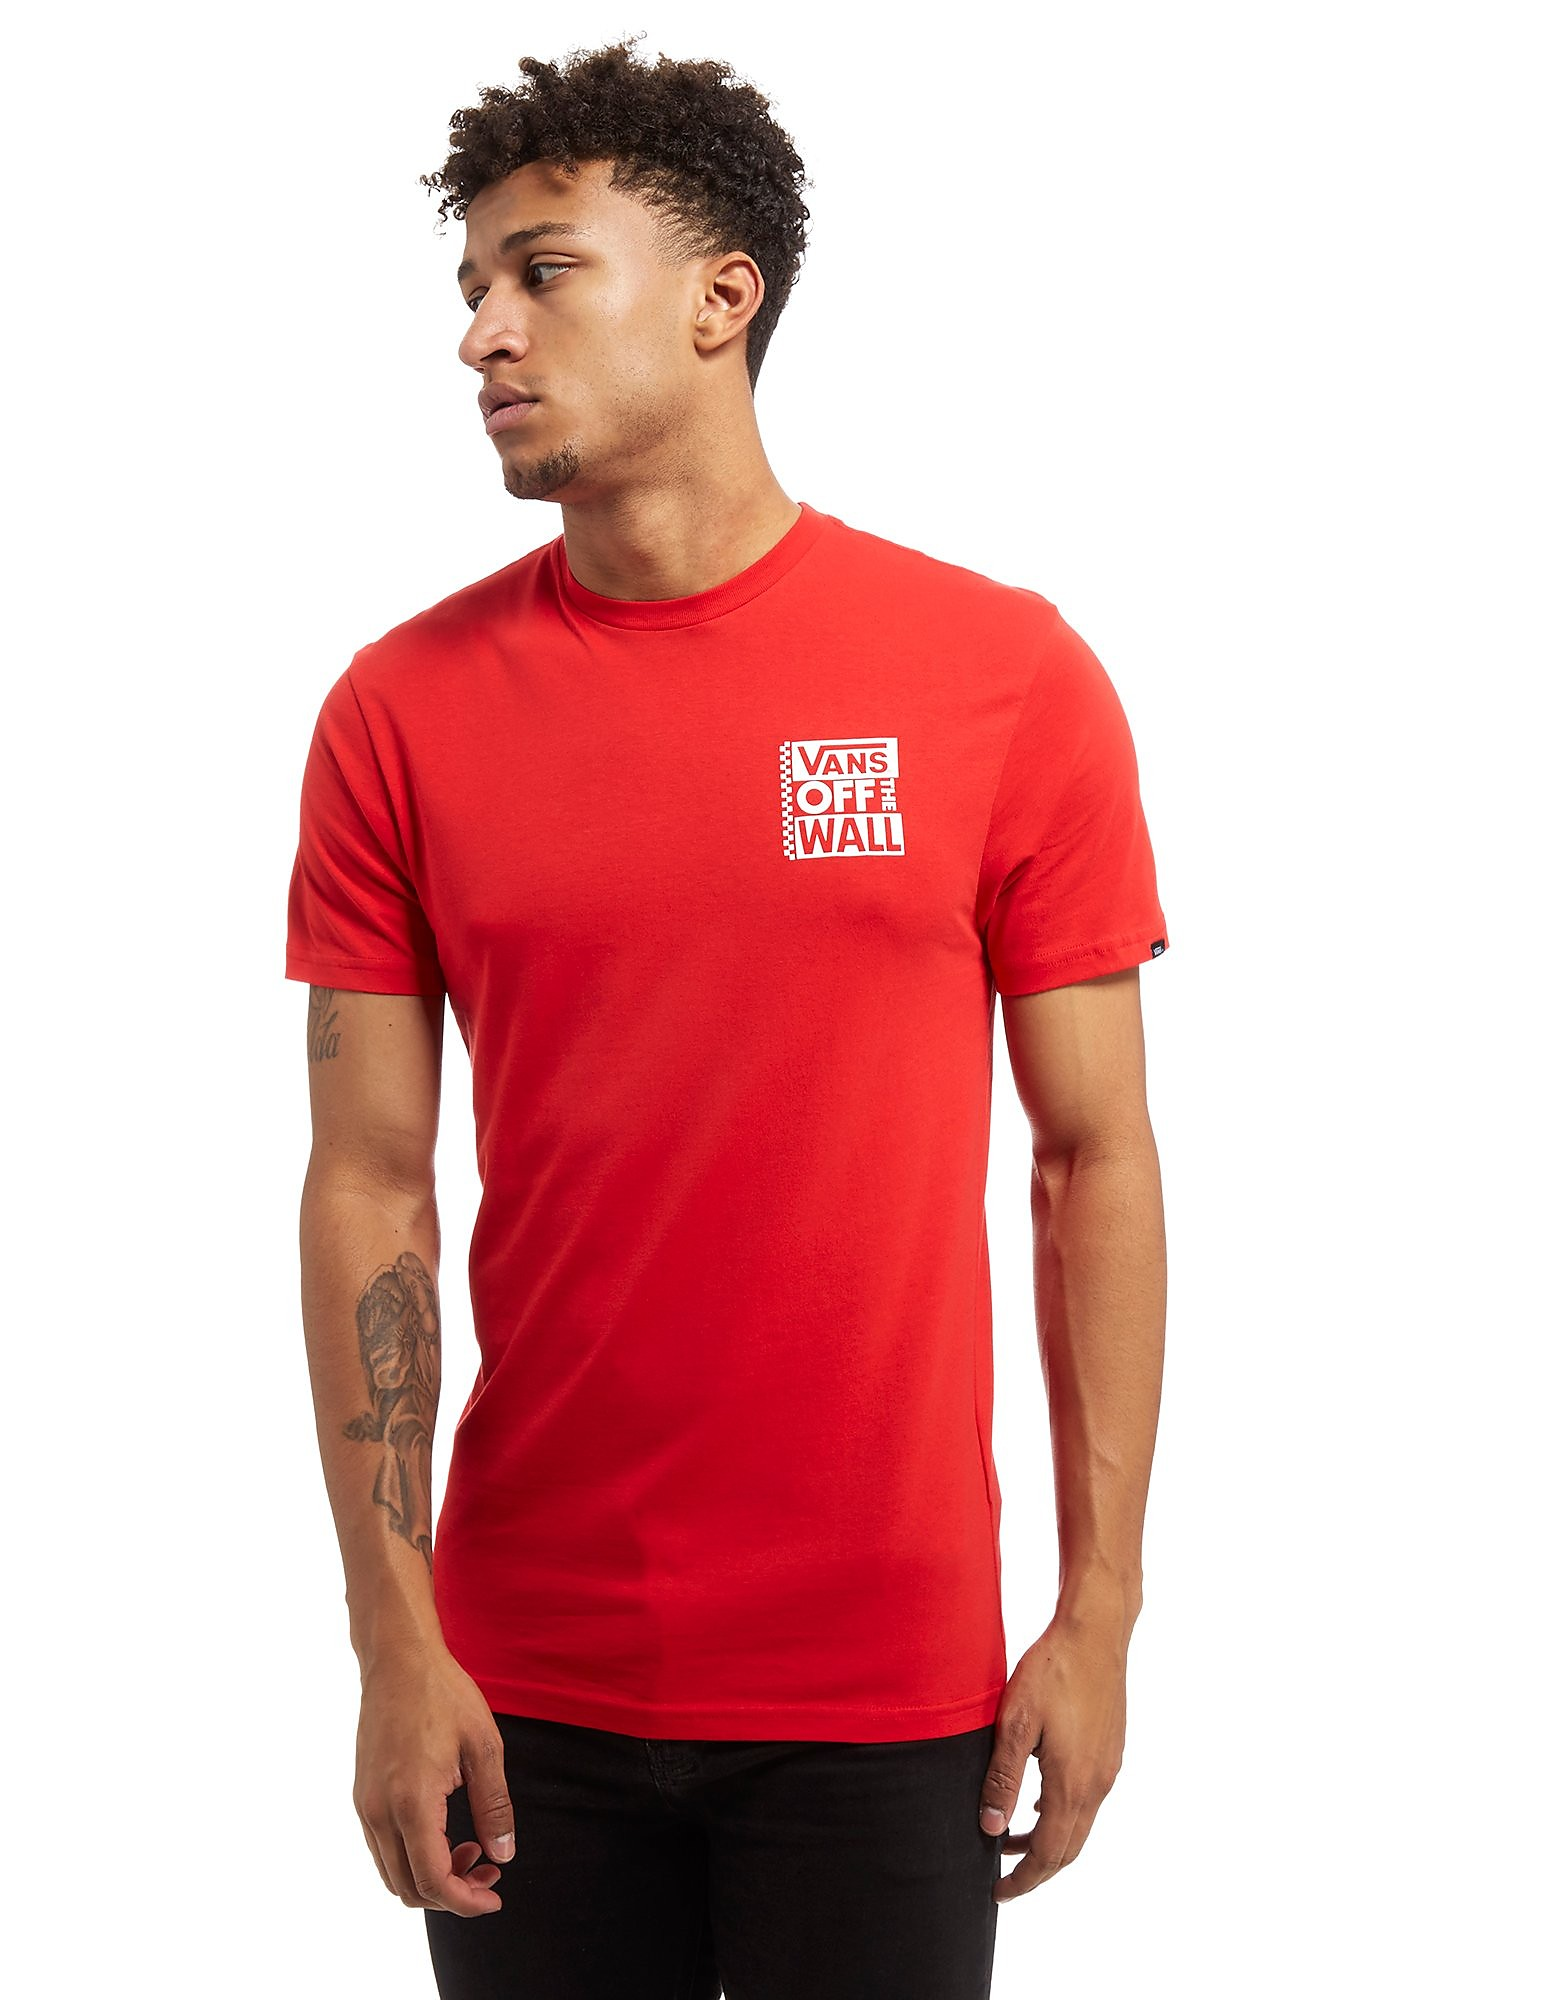 Vans Big Text Back Logo T-Shirt